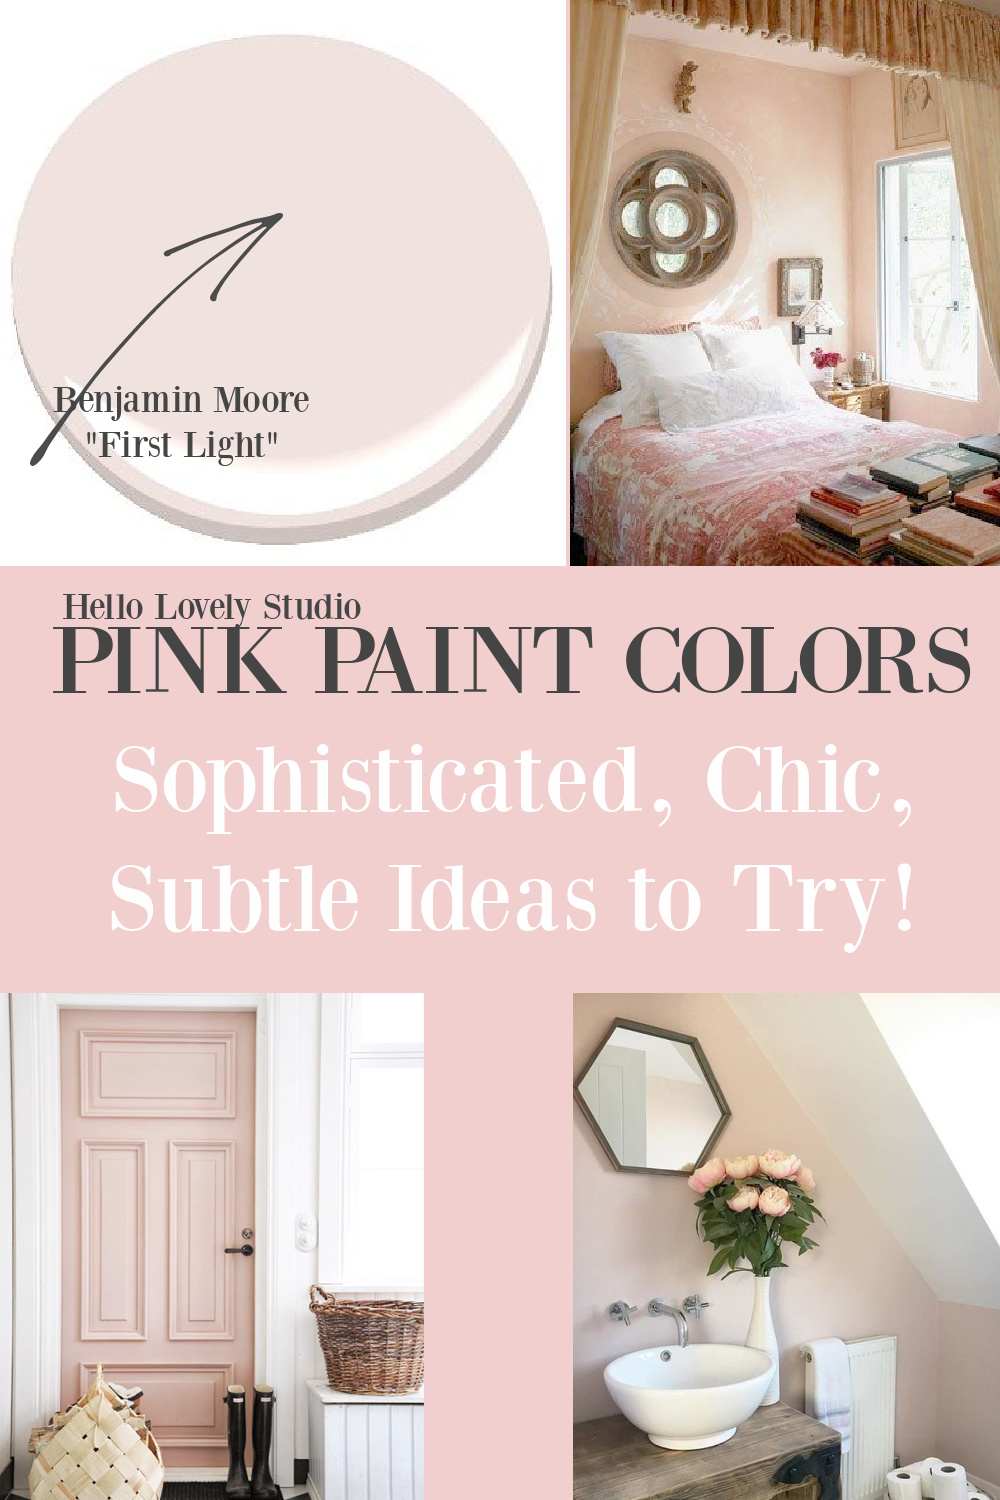 Best Pink Paint Colors Sophisticated, Chic, Subtle Ideas to Try - come get the details on Hello Lovely! #paintcolors #pinkpaint #blushpink